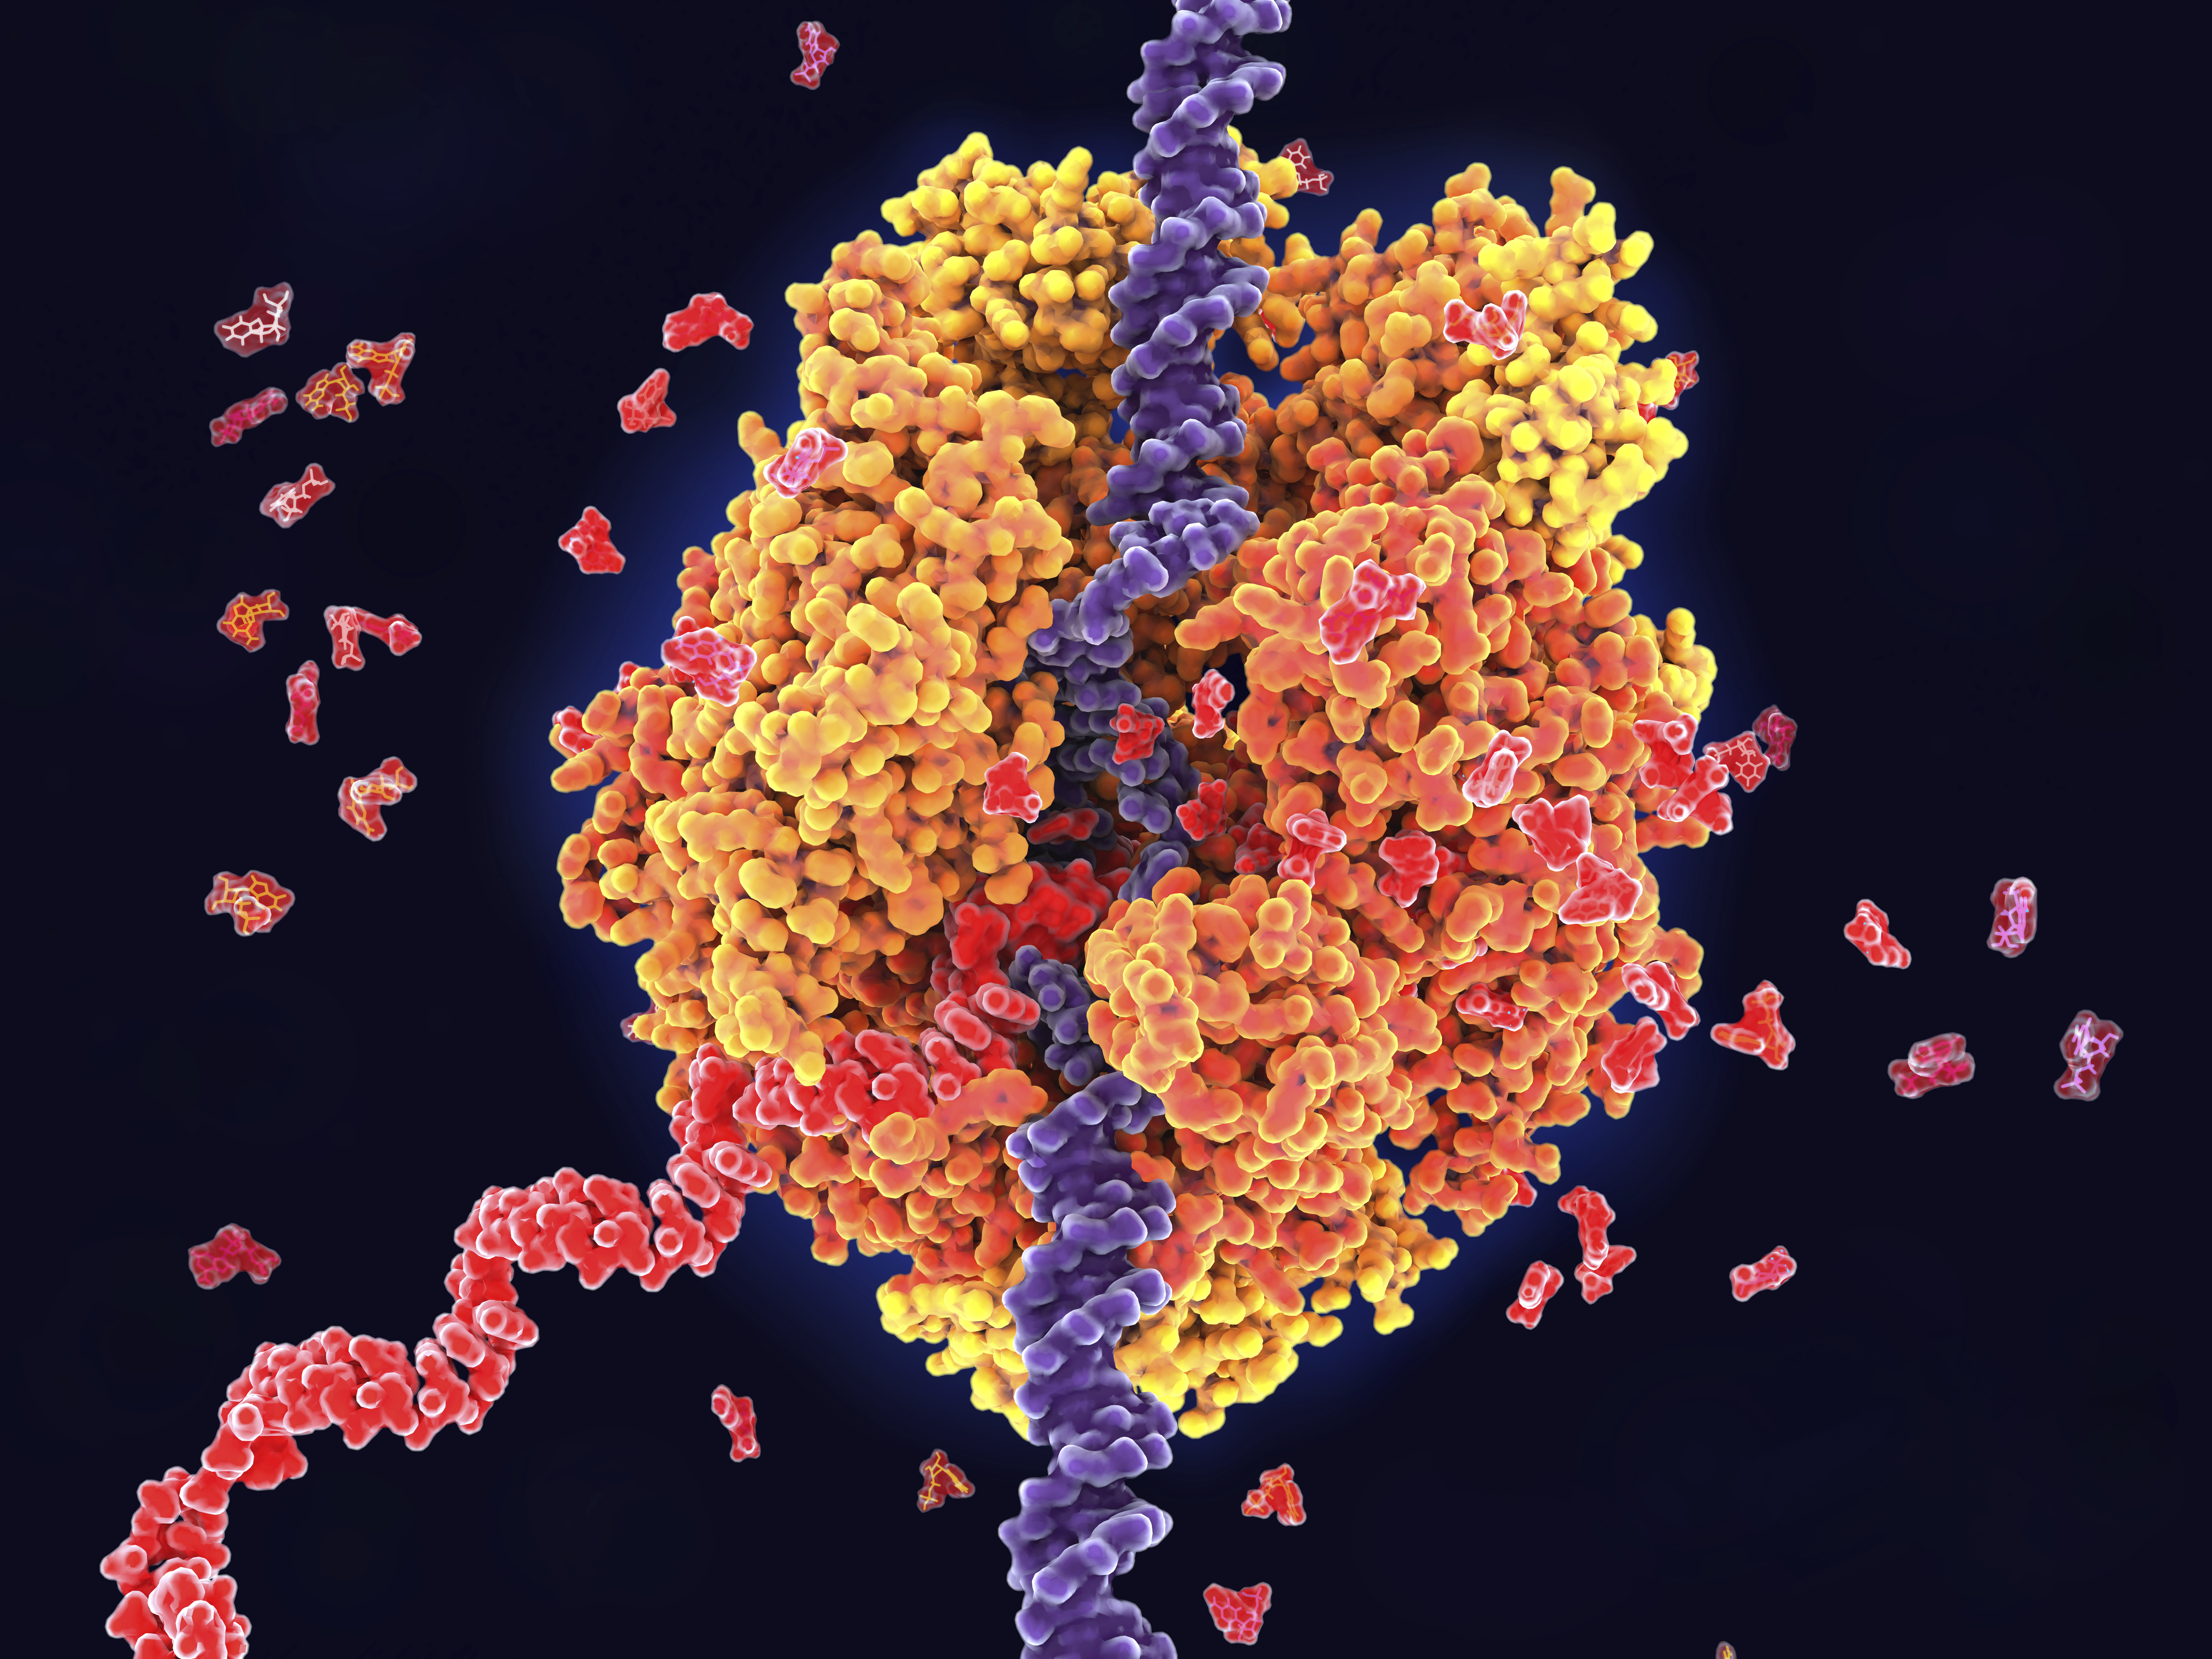 Illustration of RNA polymerase II in action in yeast. RNA (ribonucleic acid) polymerase II (orange) functions in the nucleus in the process of transcription. It unwinds the DNA (deoxyribonucleic acid) double helix (violet), and uses its nucleotide sequence as a template to produce a strand of complementary messenger ribonucleic acid (mRNA, red). RNA polymerase II recognises a start sign on the DNA strand and then moves along the strand building the mRNA until it reaches a termination signal. This single-stranded mRNA will subsequently be translated in the cytoplasm to produce a particular protein.